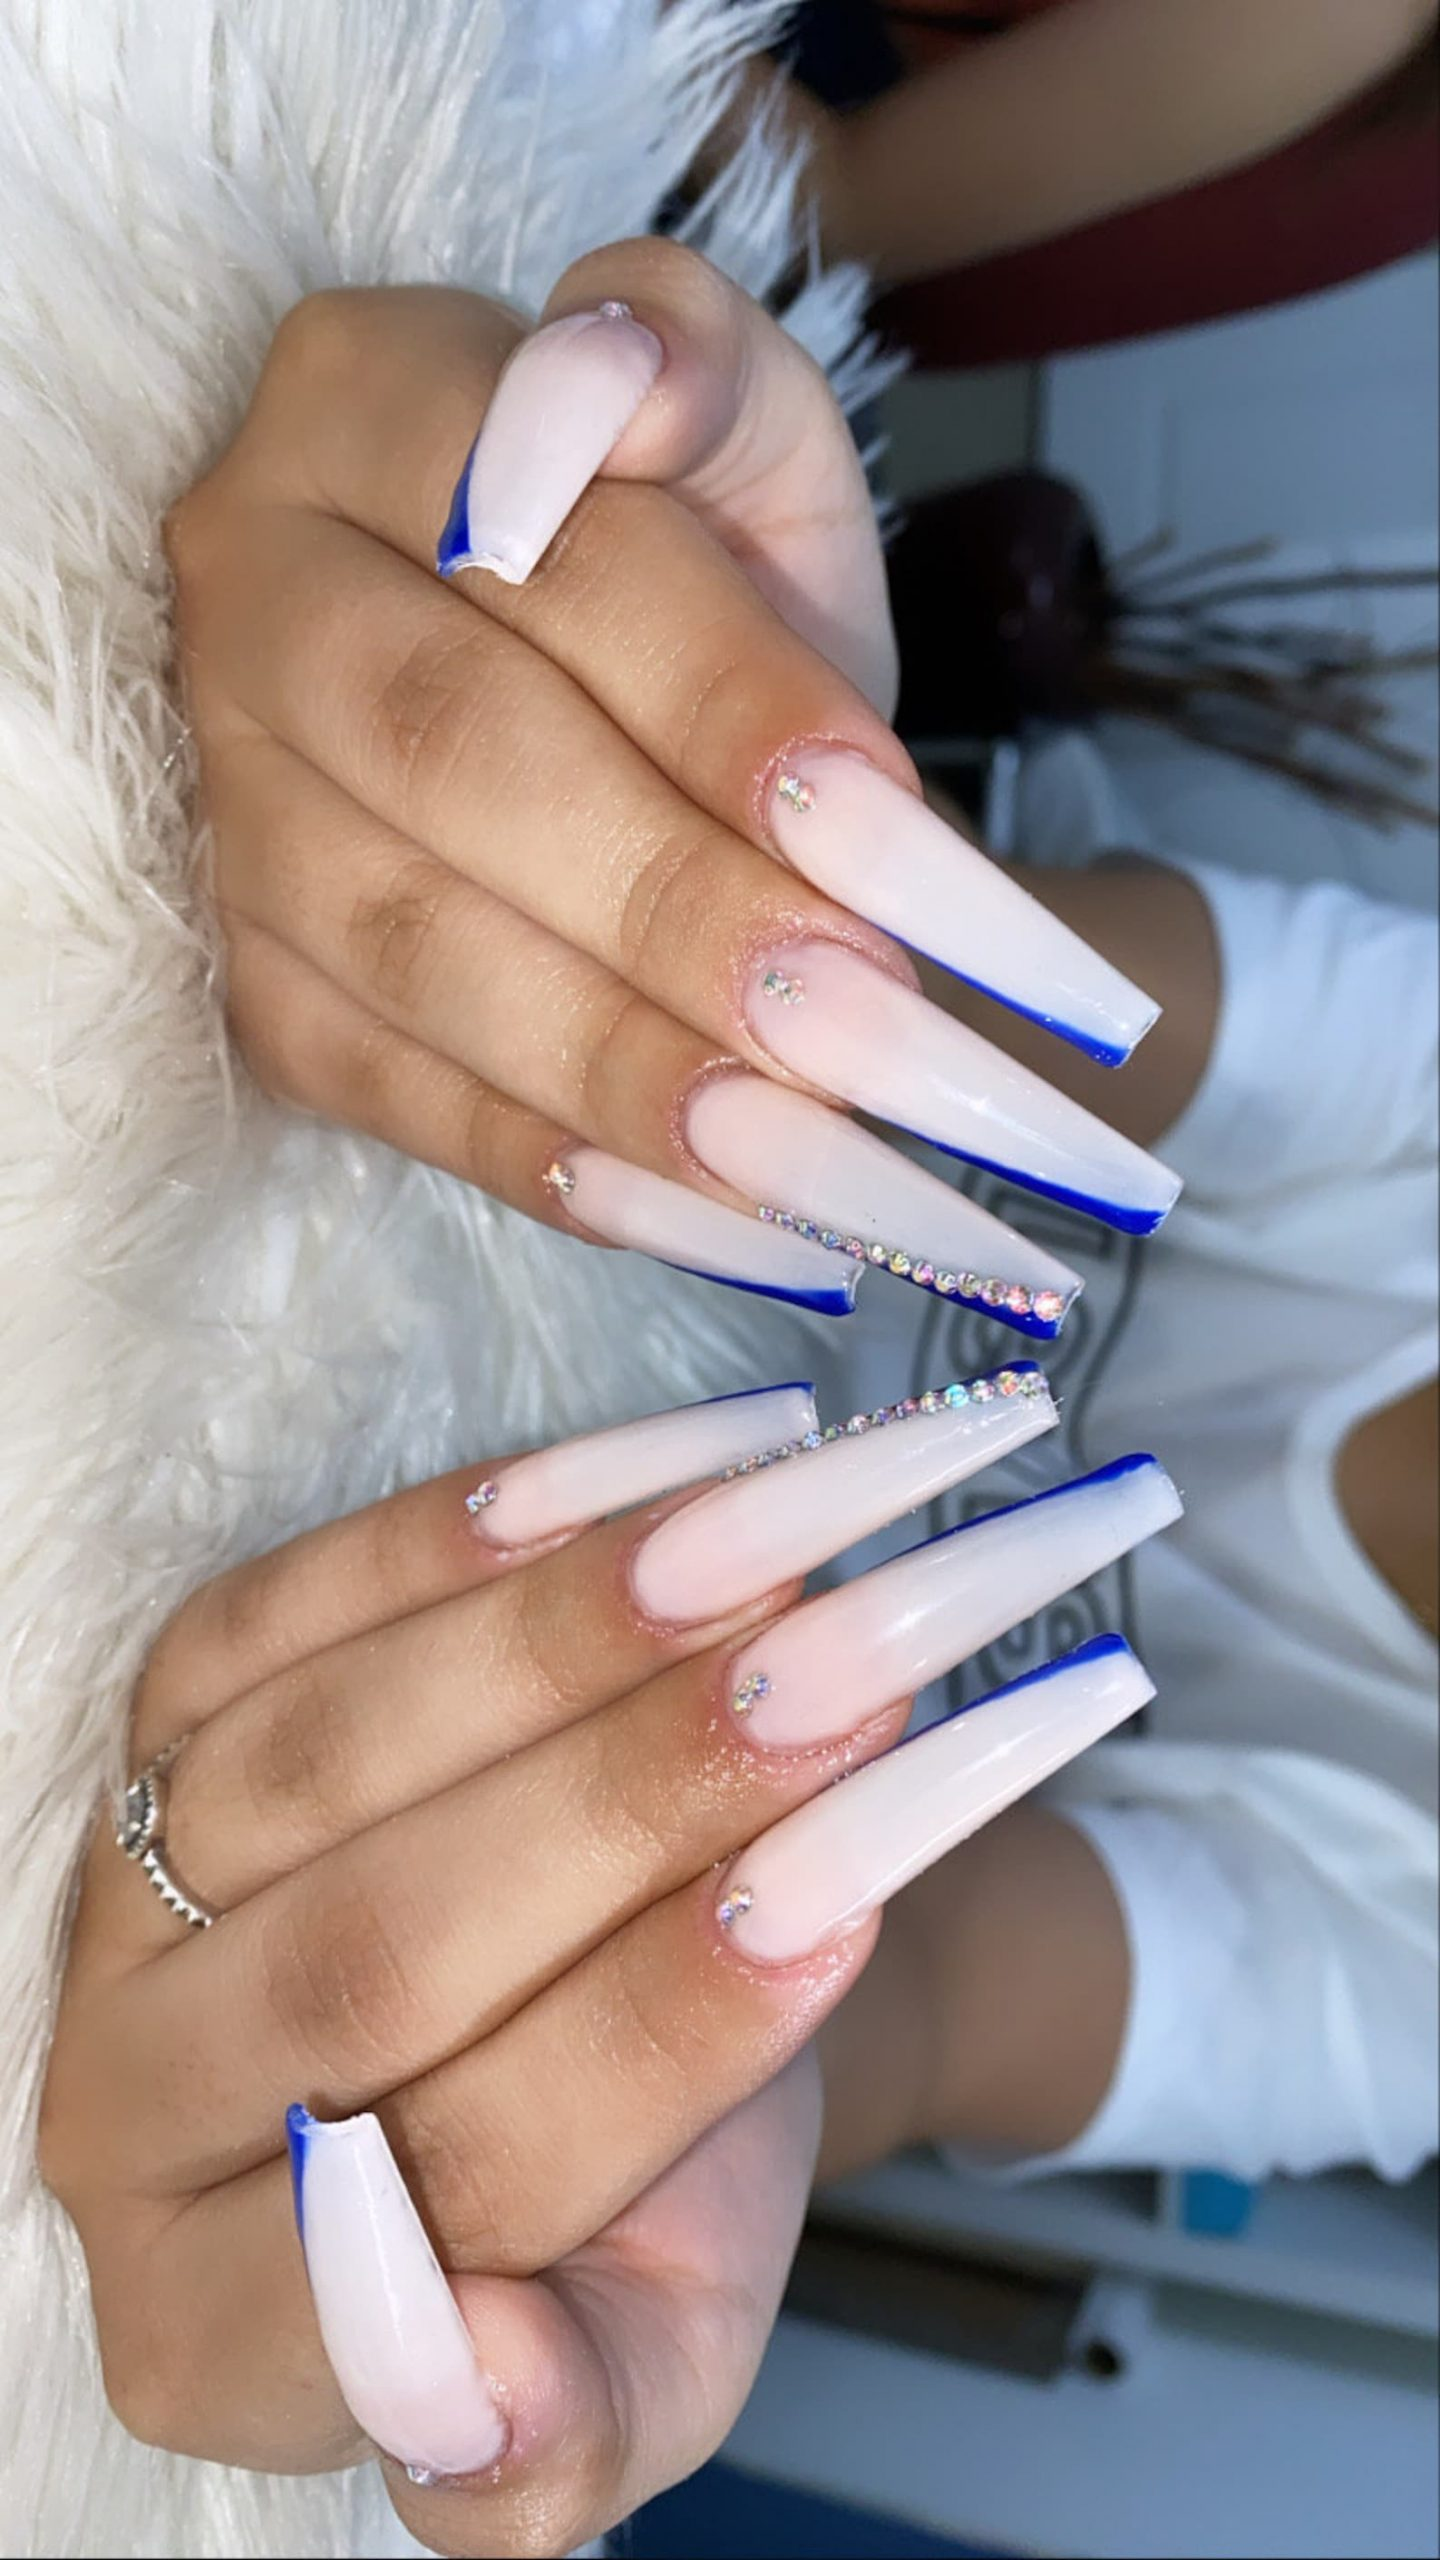 XXL white birthday nails with royal blue side French tips